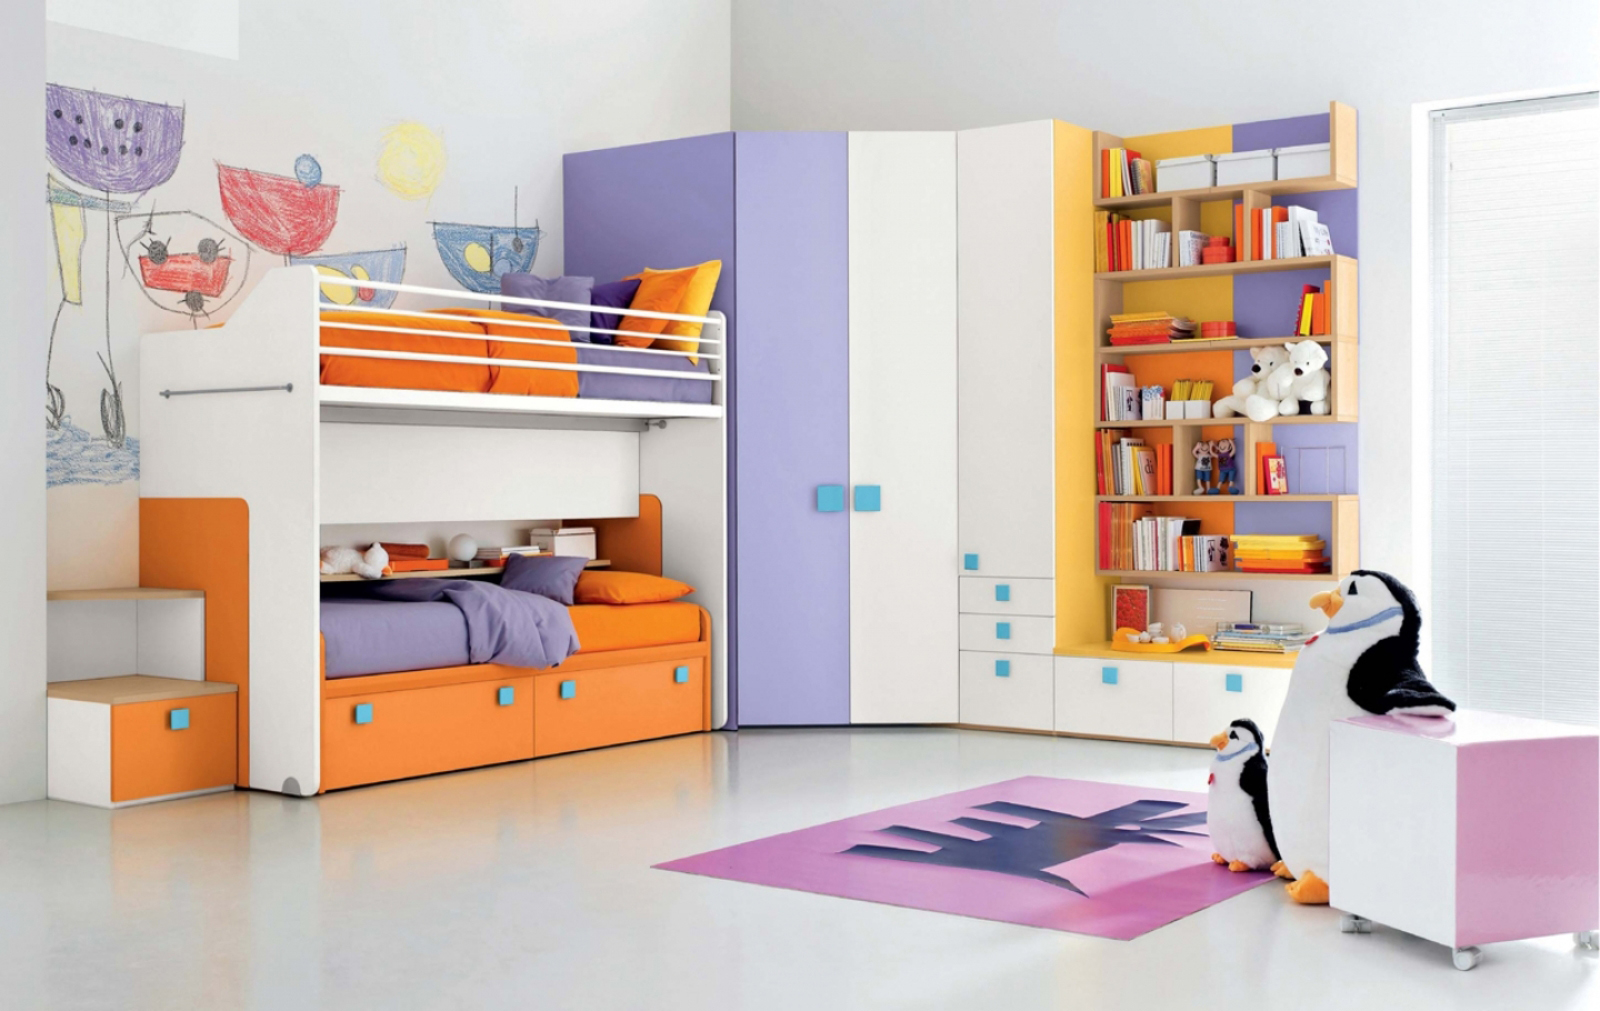 Few Vibrant and Lively Kids Bedroom Ideas | My Decorative